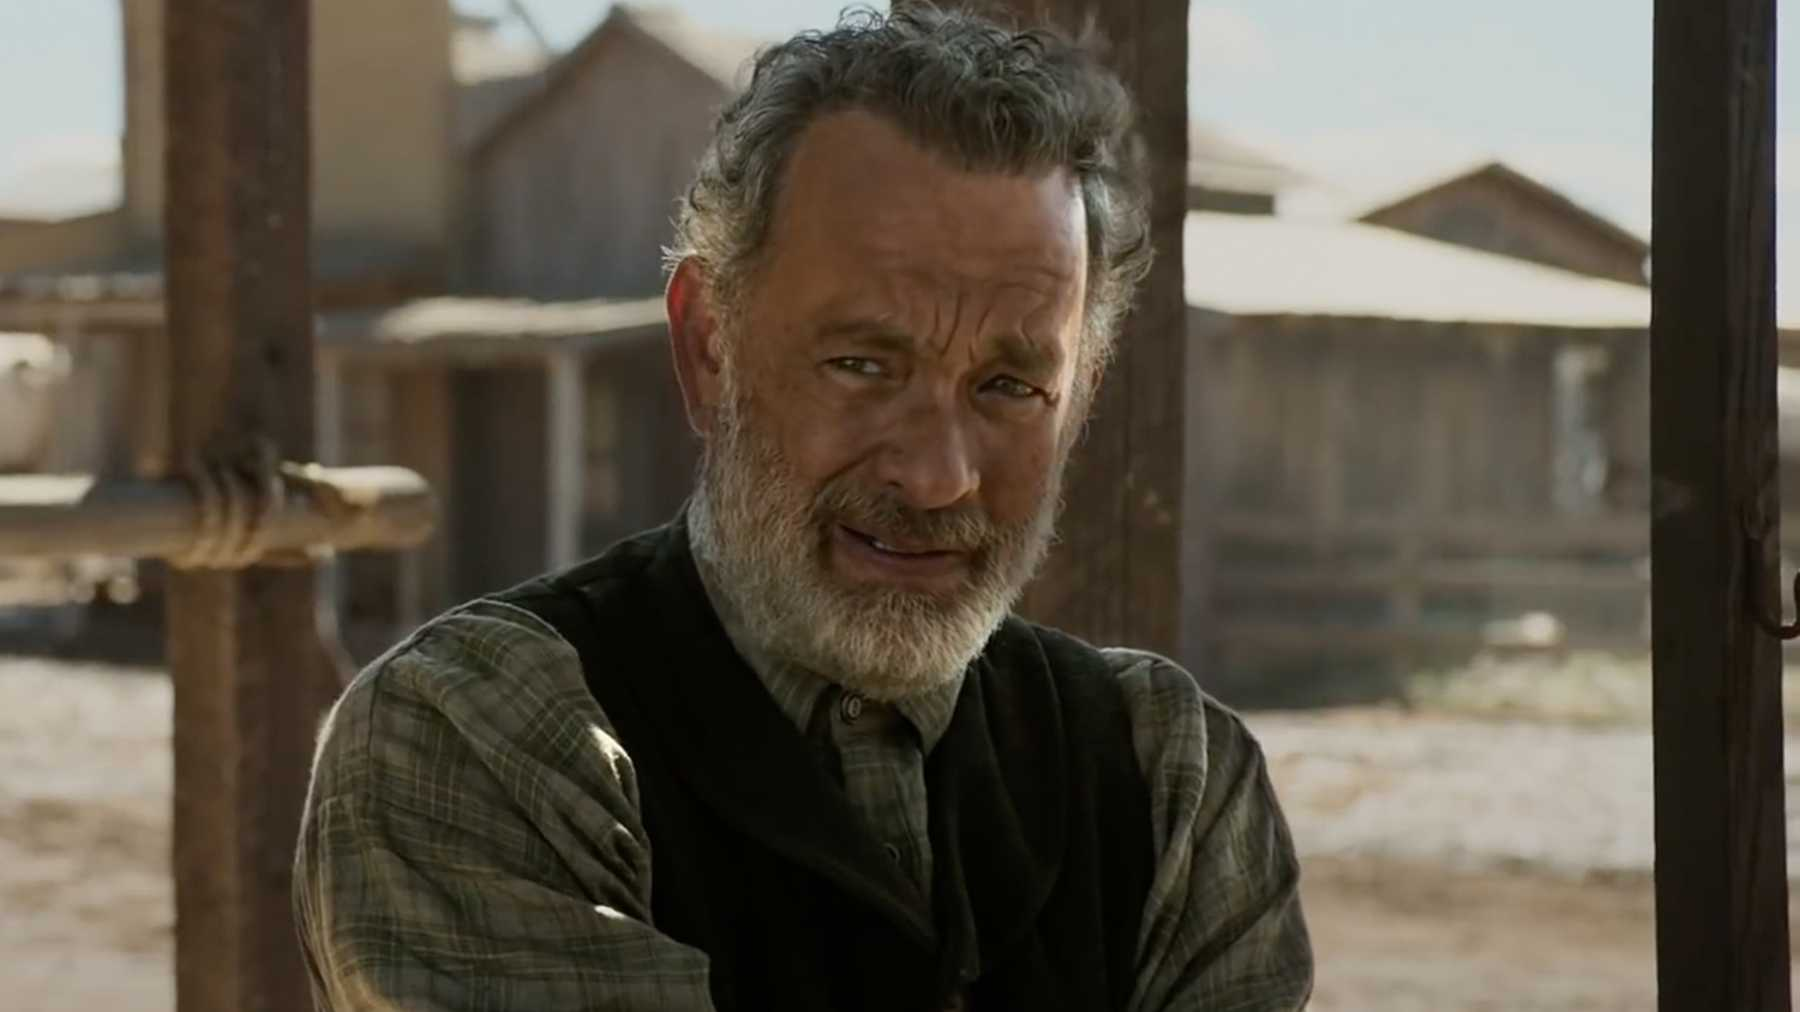 Tom Hanks 'News of the World' is a poignant cowboy film - Esquire Middle  East